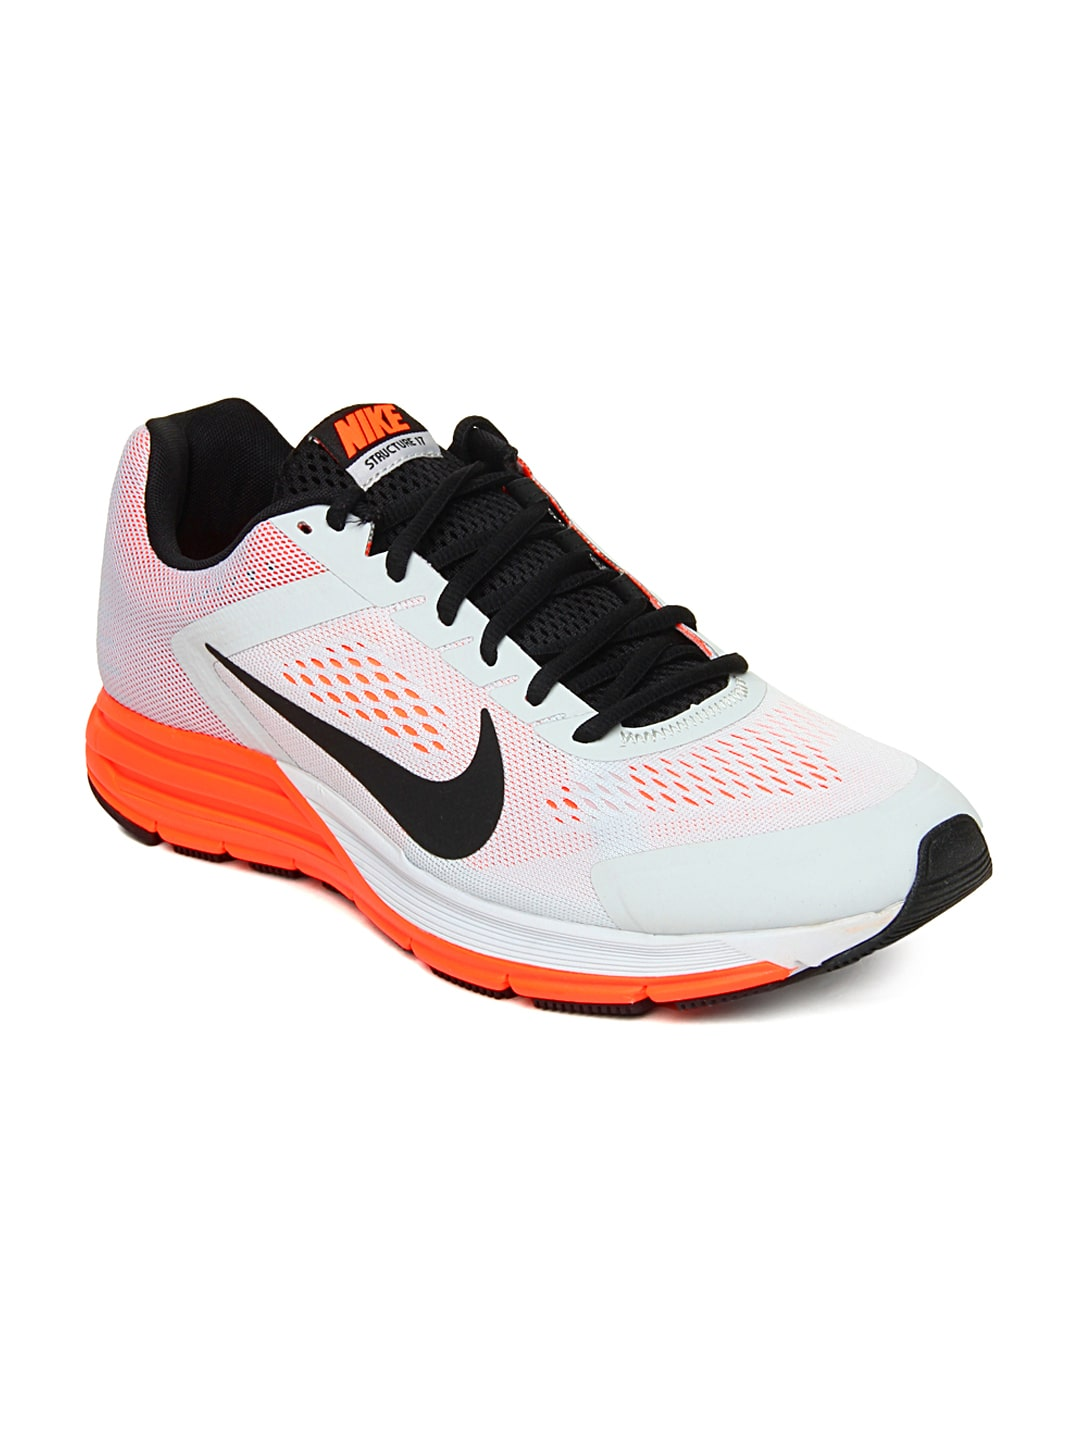 99ef898c3f5a Nike 615587-003 Men Light Grey Zoom Structure 17 Running Shoes ...